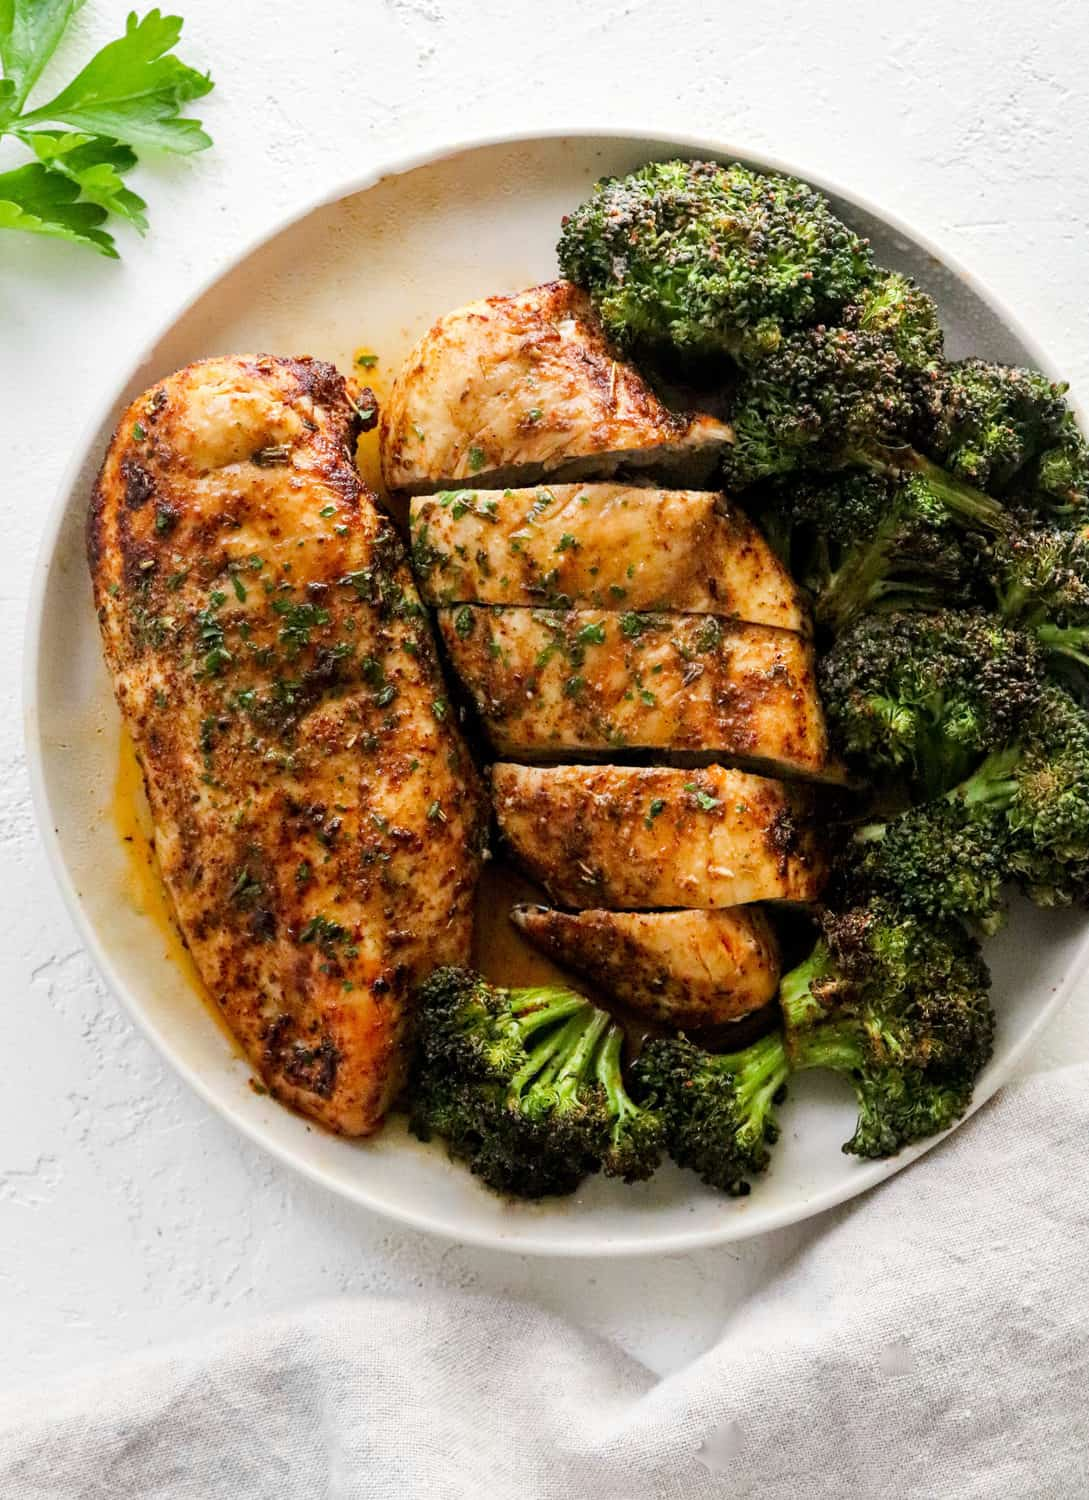 Crispy boneless chicken breast on a plate with crips broccoli on a white surface